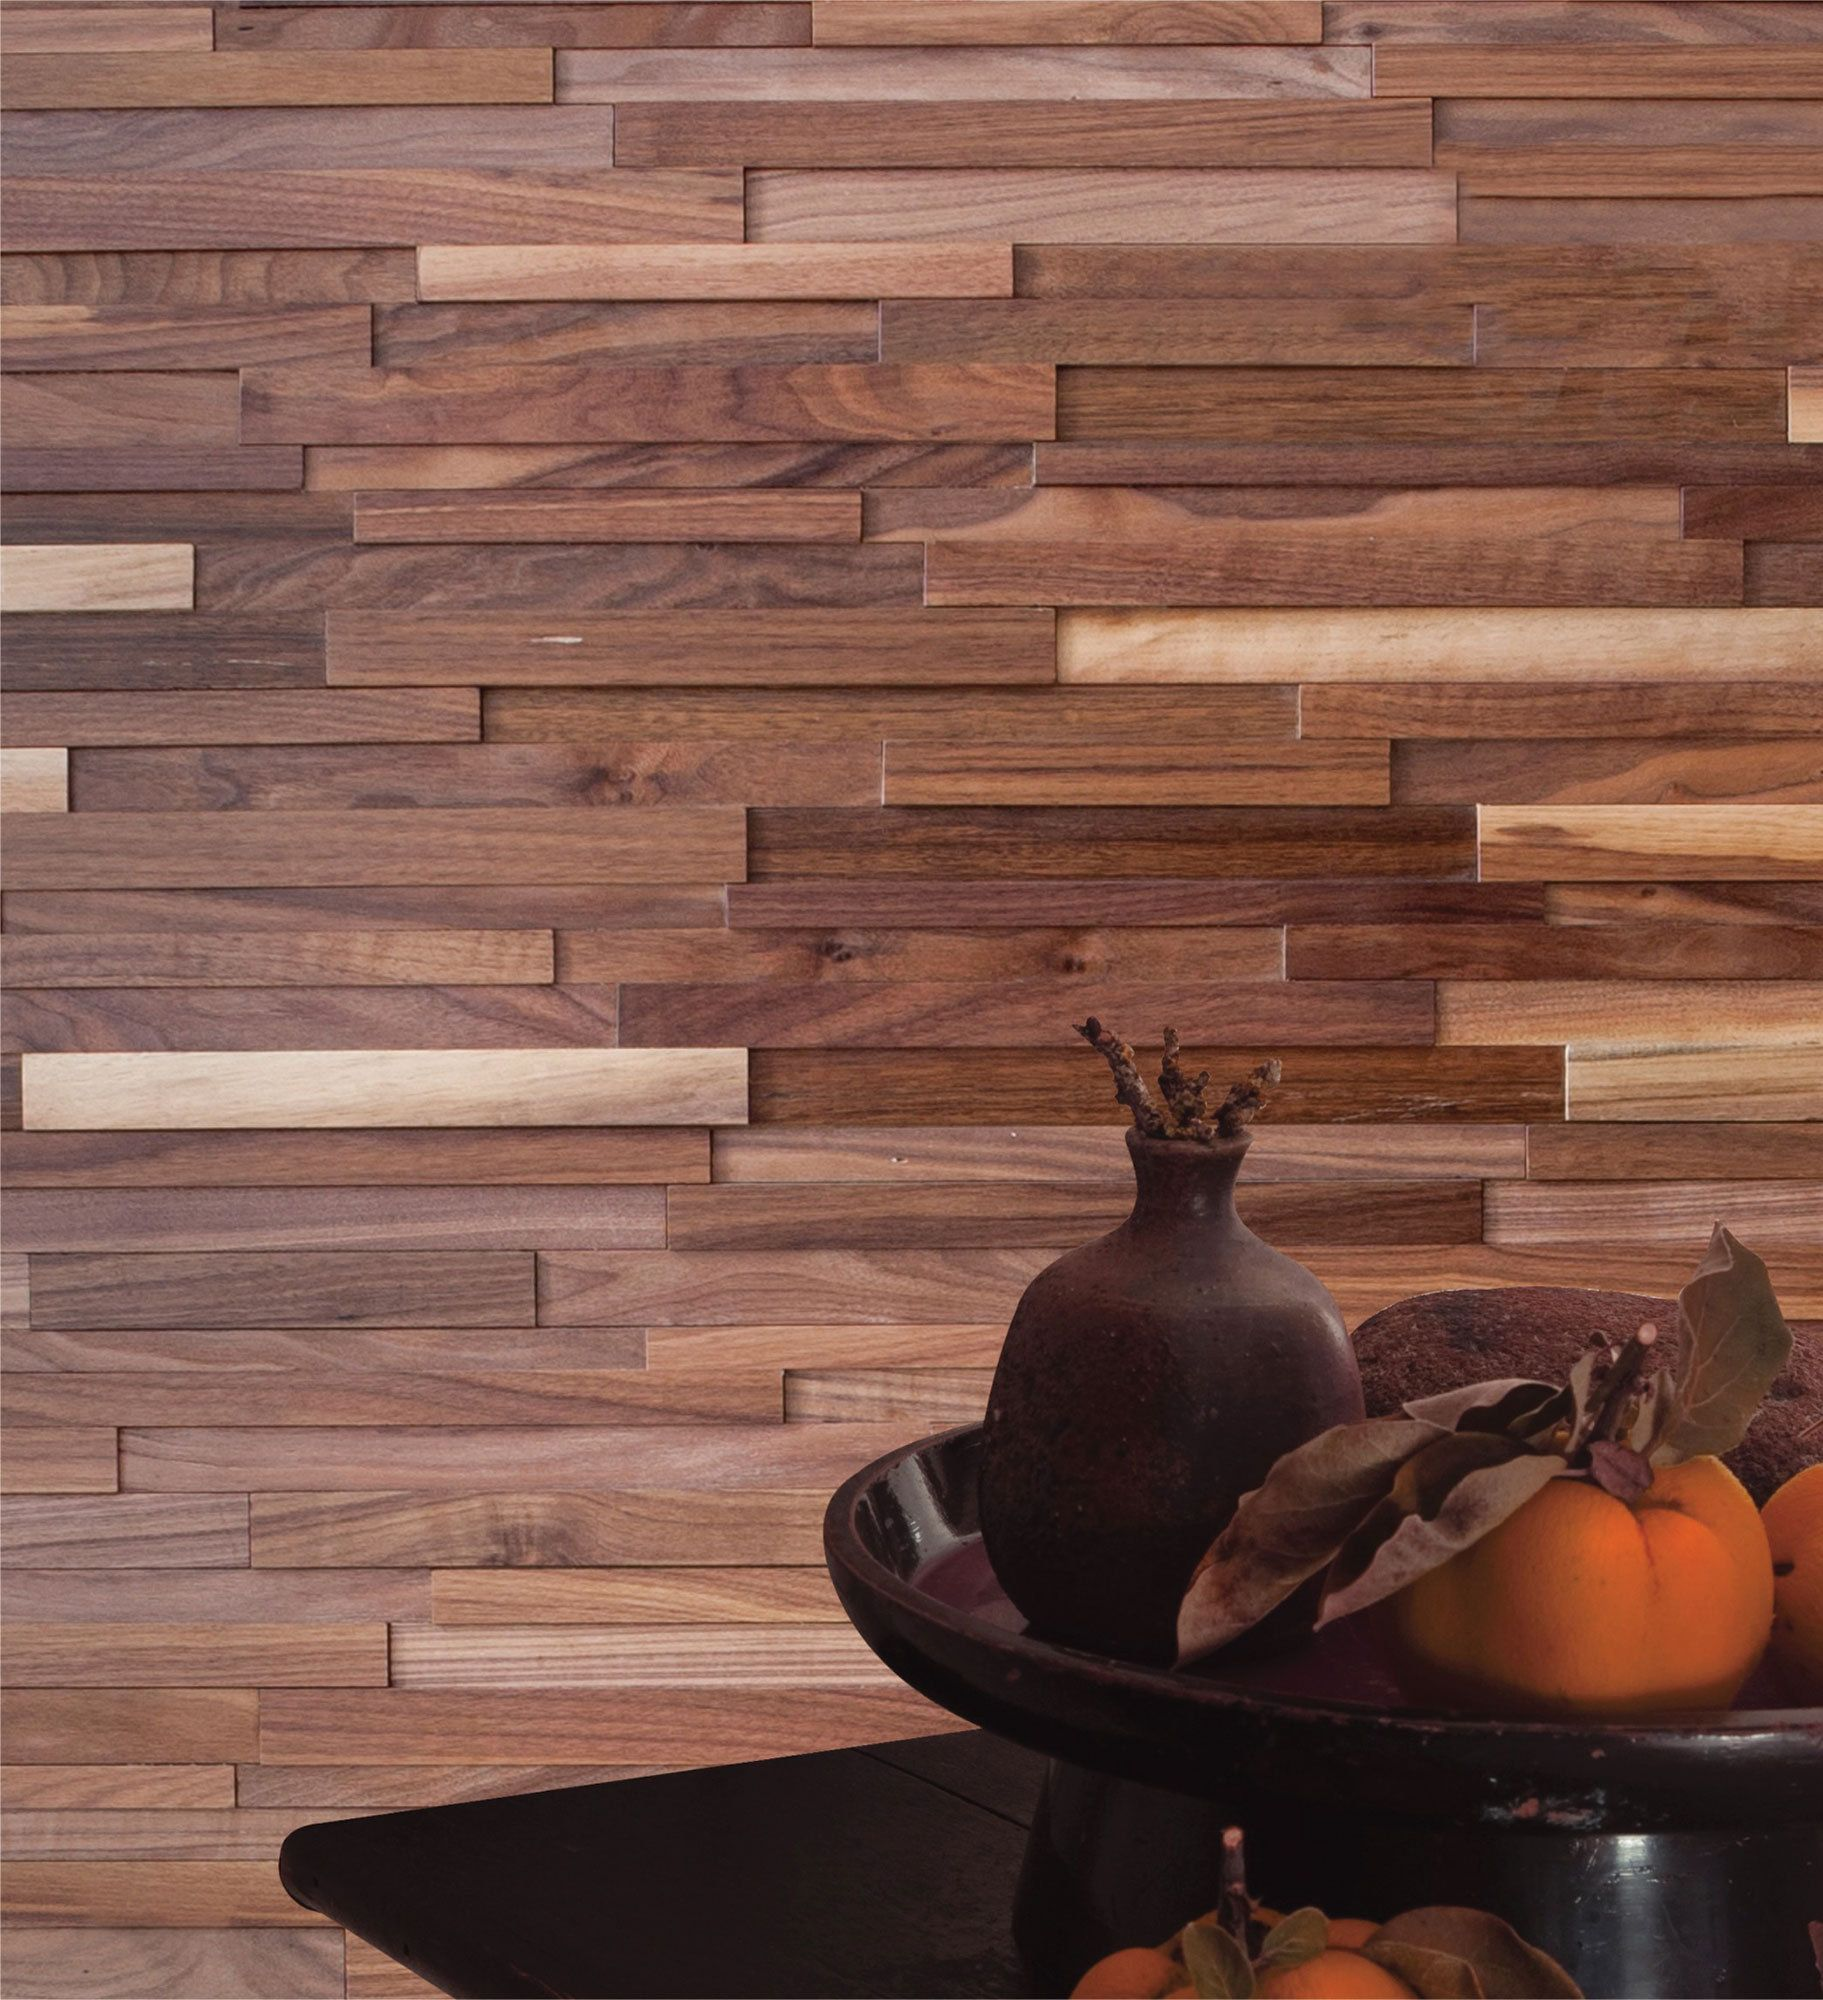 Black Walnut Solid Hardwood 3d Wood Wallscape Wall Covering Diy Friendly Interlocking Planks 7 7 8 H X 47 1 4 W X 1 2 Wood Panel Walls Wood Solid Hardwood